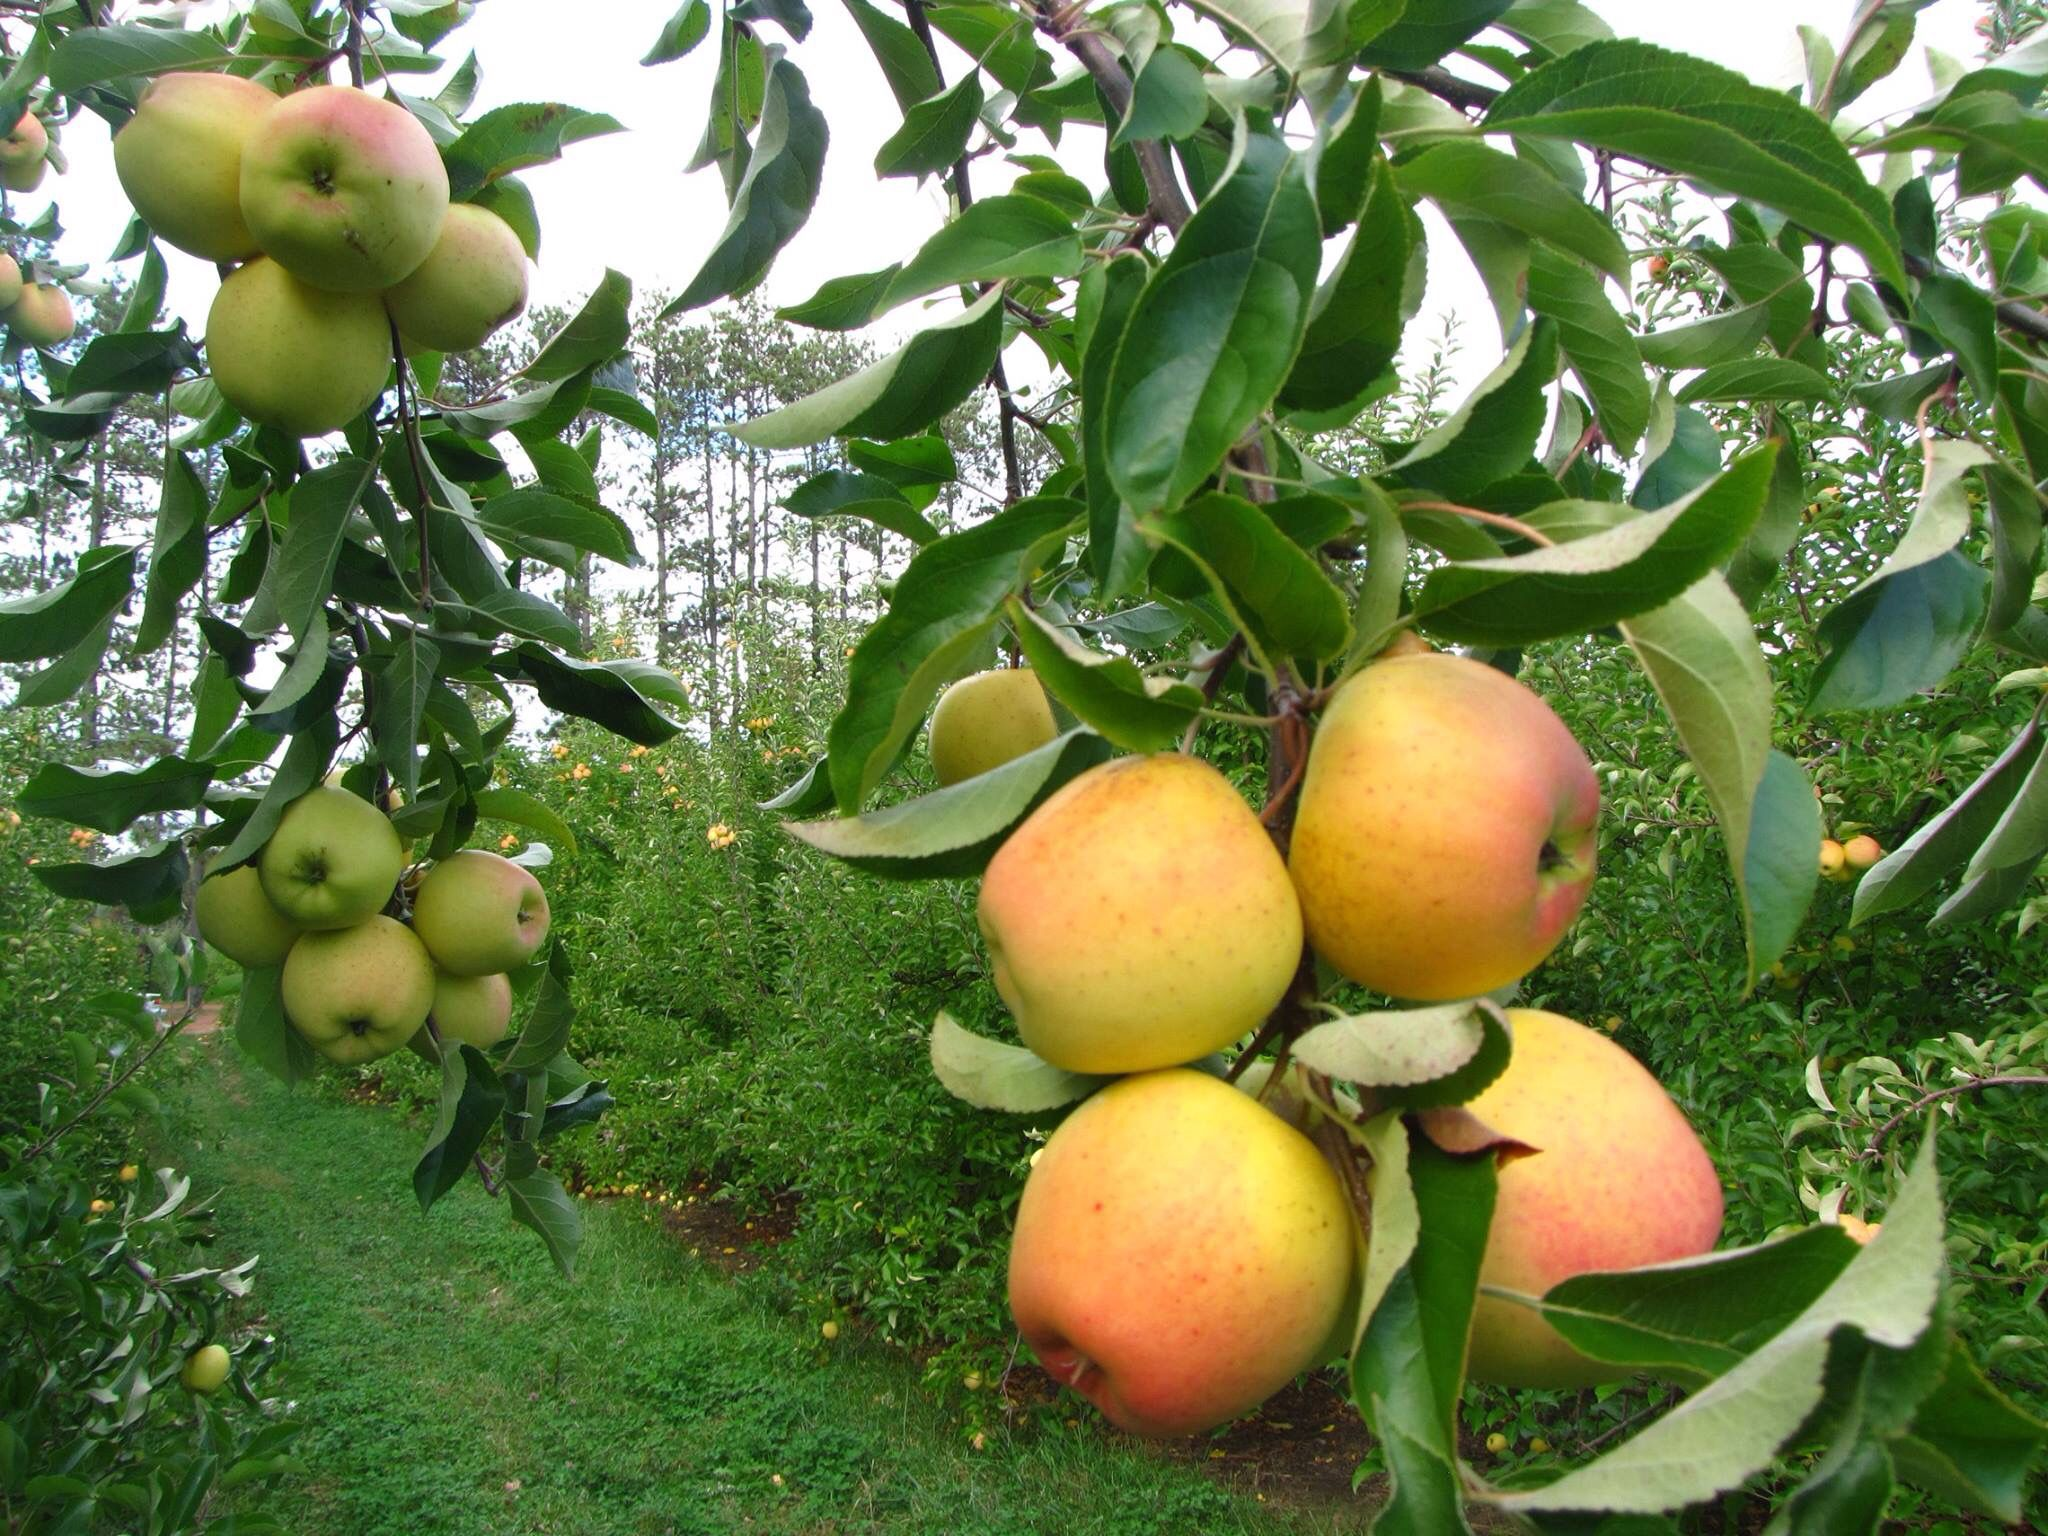 GOLDEN APPLES ORCHARDS IN HUNZA VALLEY, GILGIT BALTISTAN